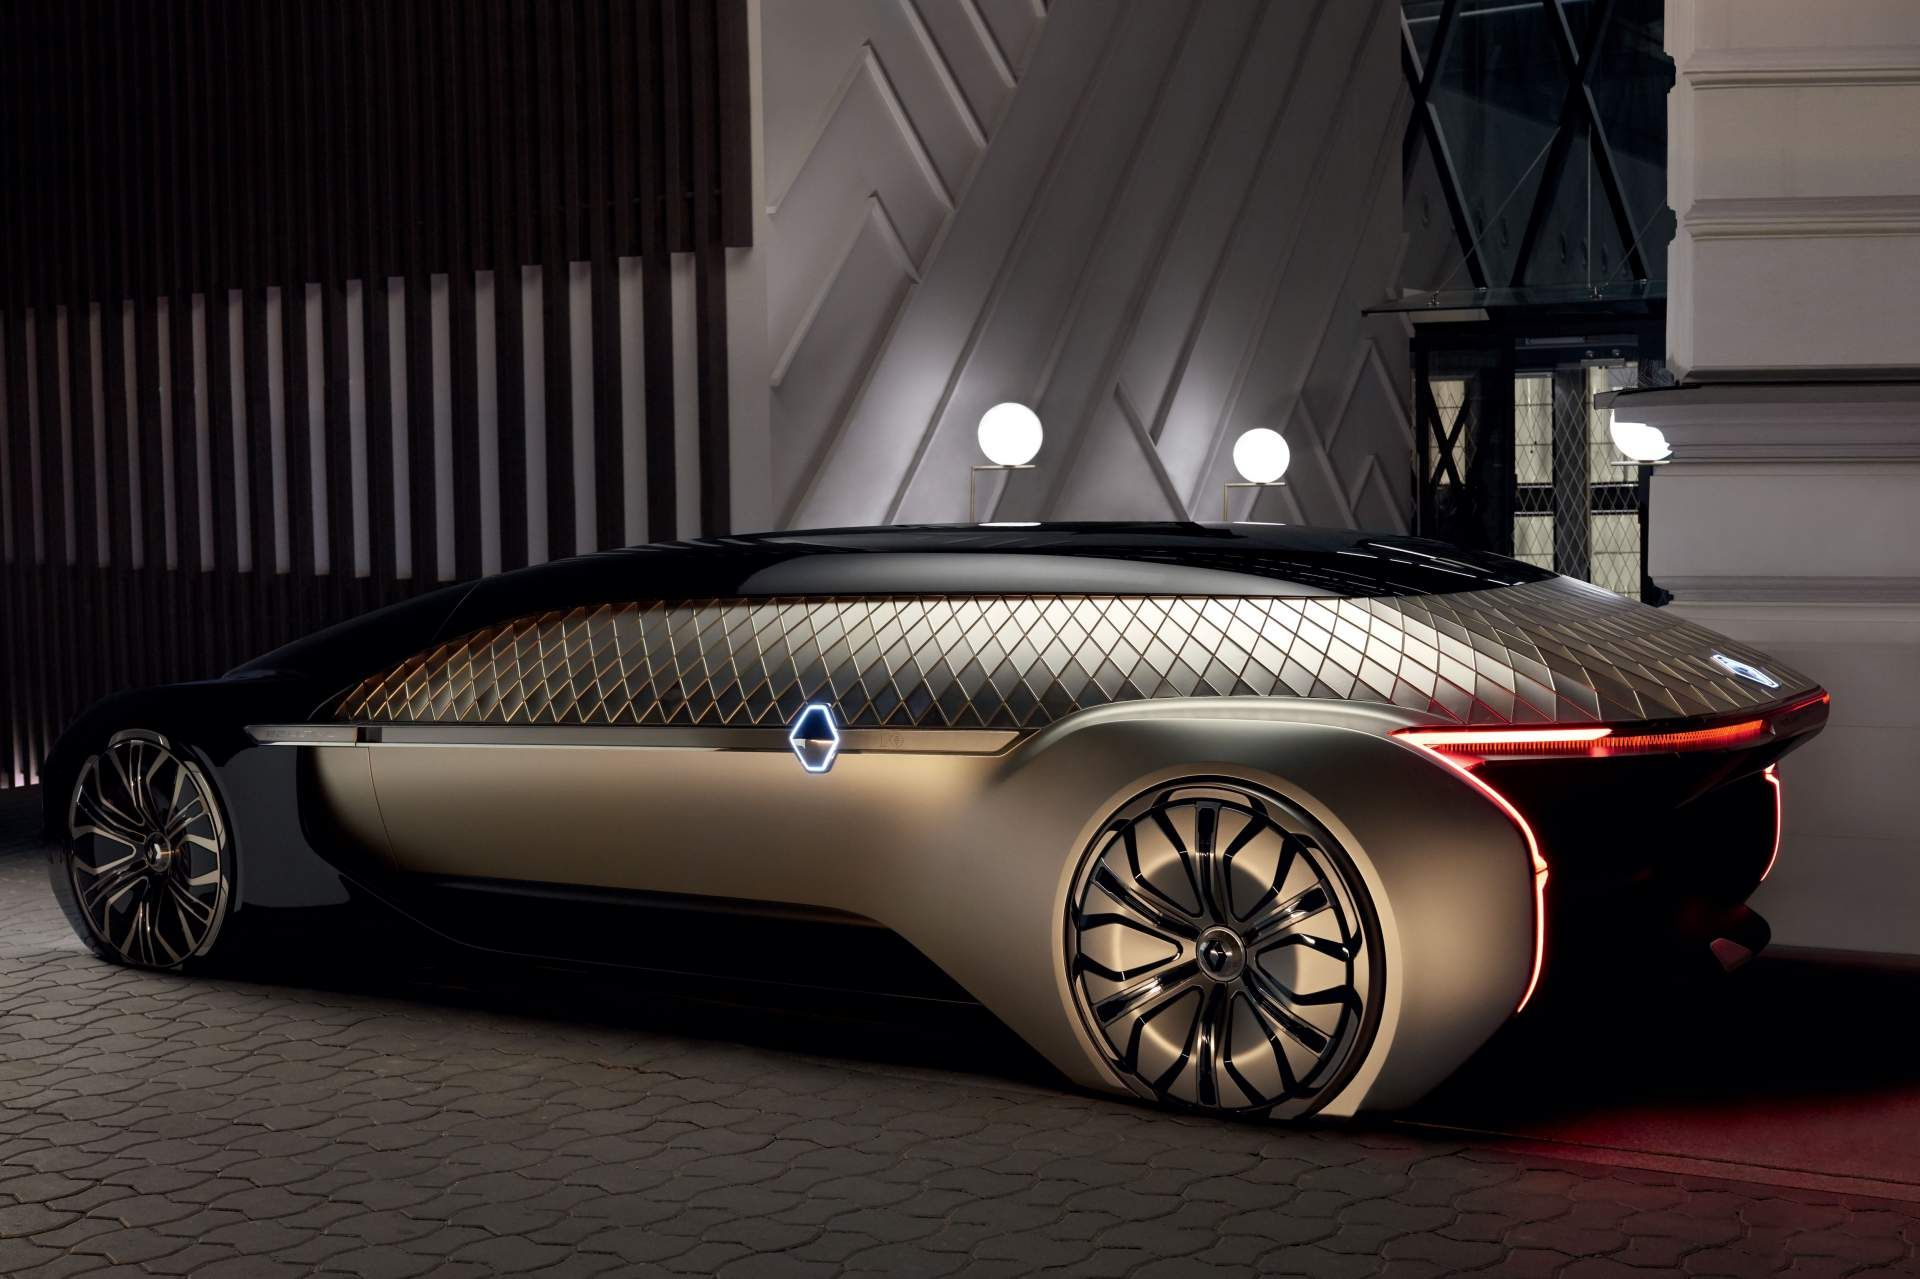 Renault Ez Ultimo Concept Envisions Self Driving Luxury Lounge Carscoops Concept Cars Renault Futuristic Cars